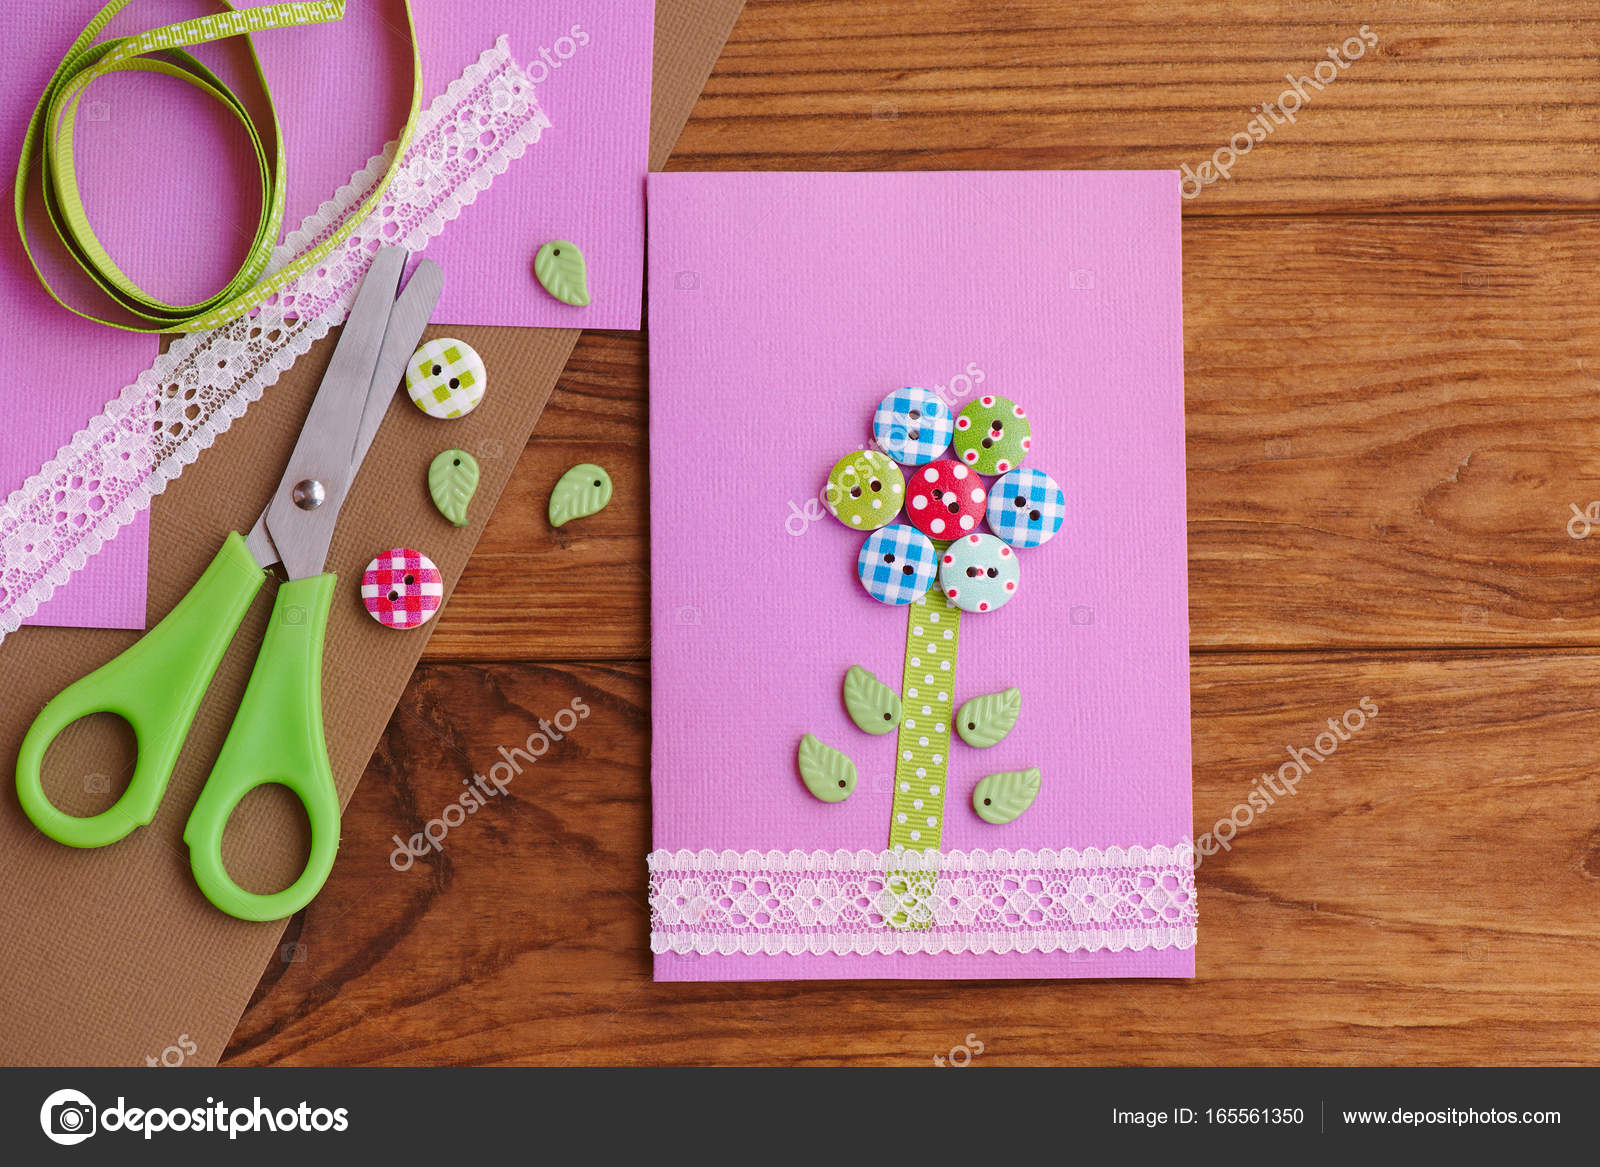 Greeting card with a flower from wooden buttons decorated with lace greeting card with a flower from wooden buttons decorated with lace birthday card for mom mothers day diy tools and materials on a wooden table m4hsunfo